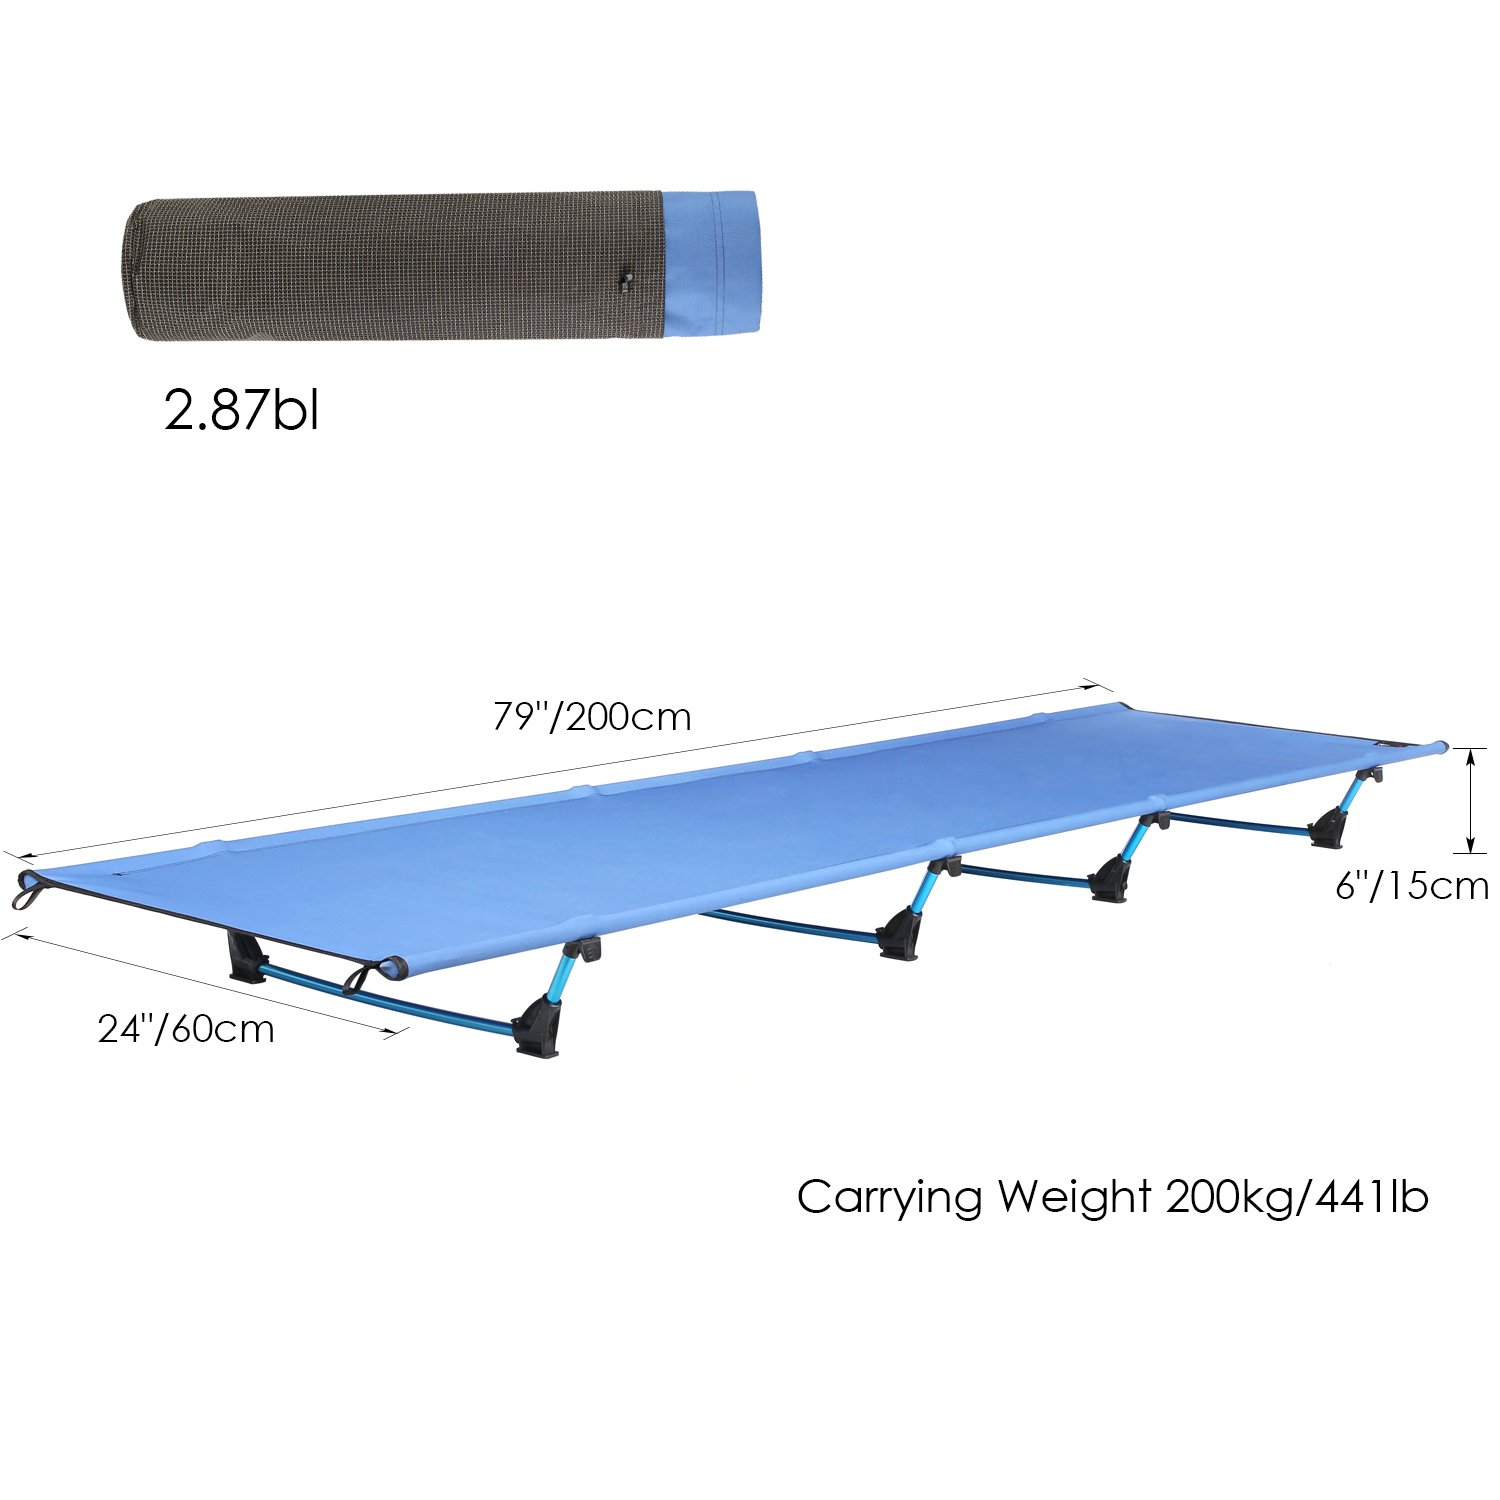 Aluminium Alloy Military Folding Cot for Outdoor Activity Bearing 441bs 79 x 24 Inch femor Ultra-Lightweight Camping Cot Portable Collapsible Camping Bed